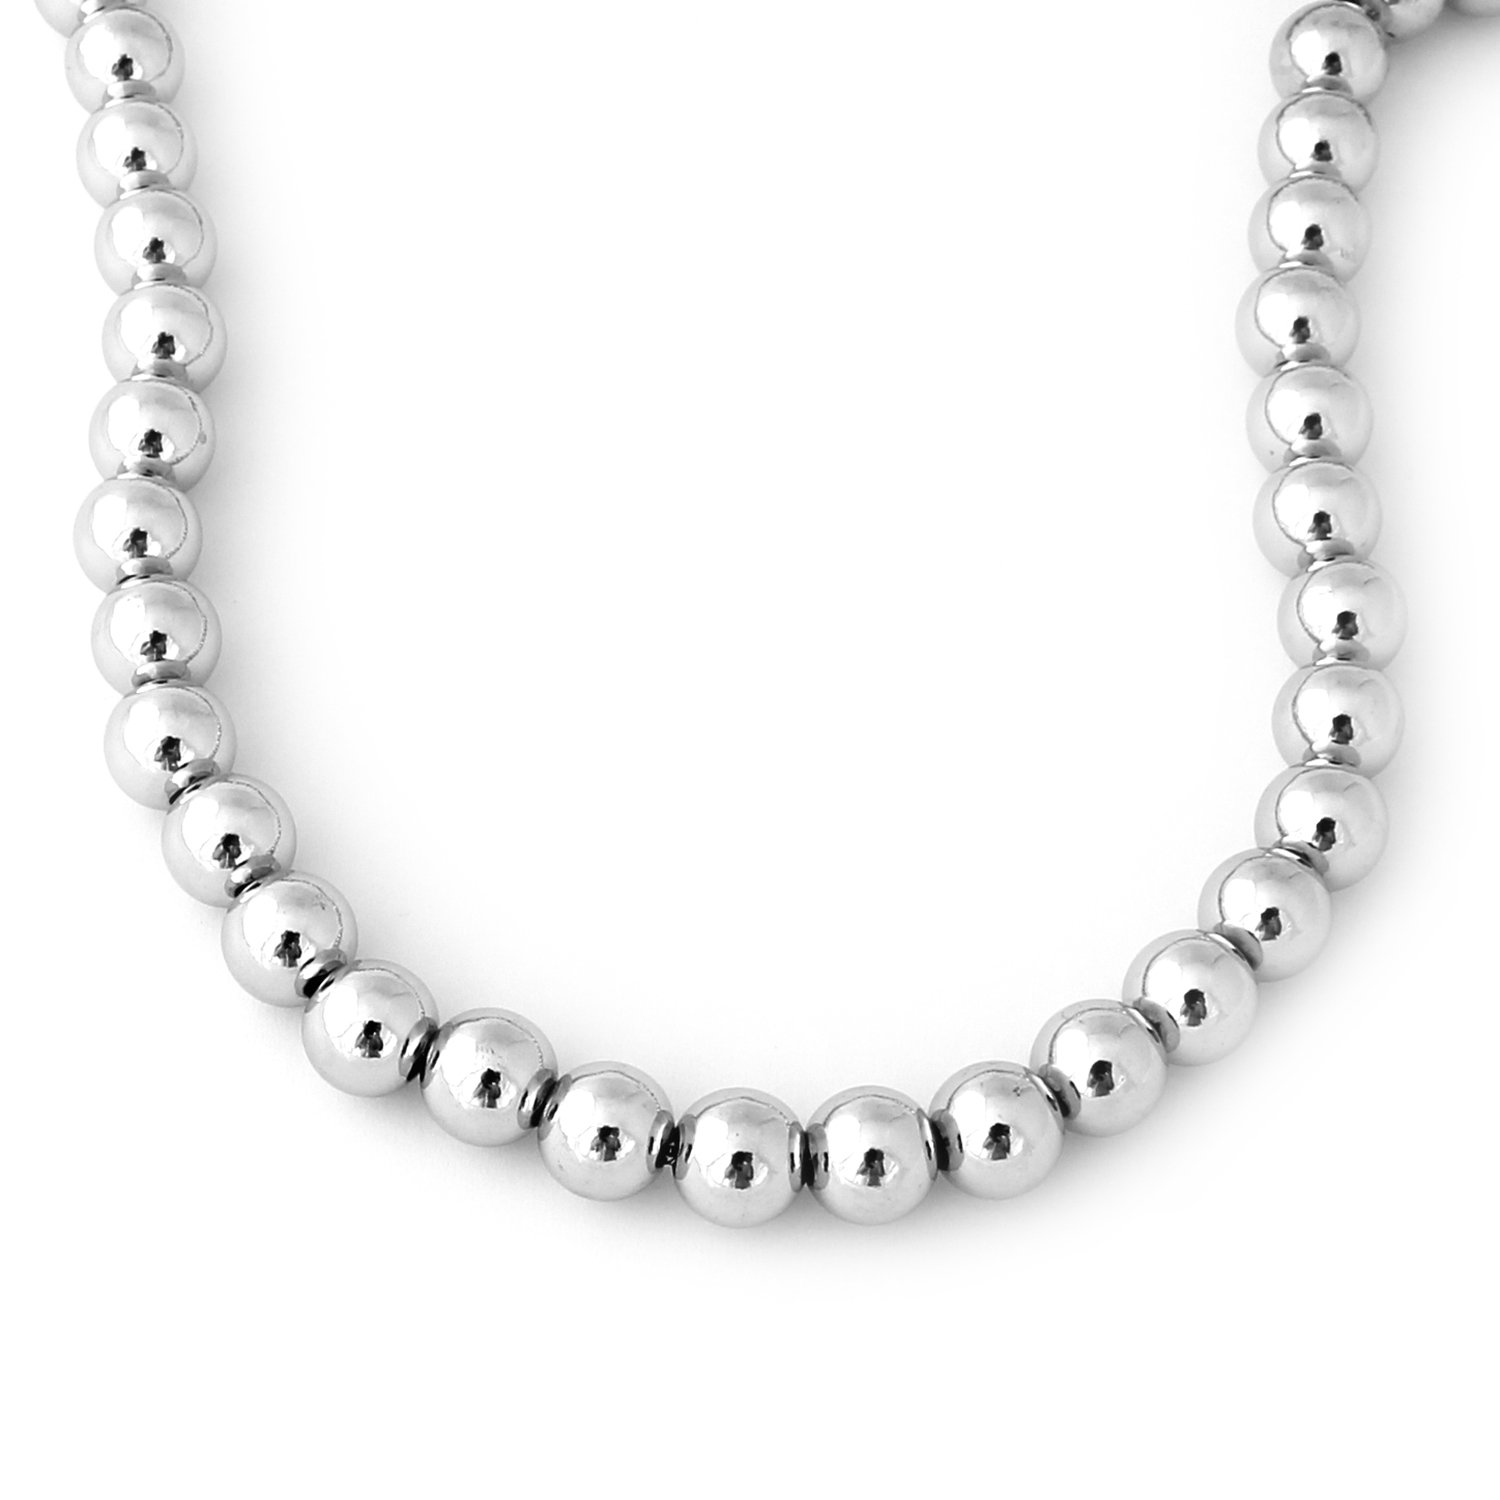 Sterling Silver Lightweight Beaded 20'' Necklace - 9mm Beads